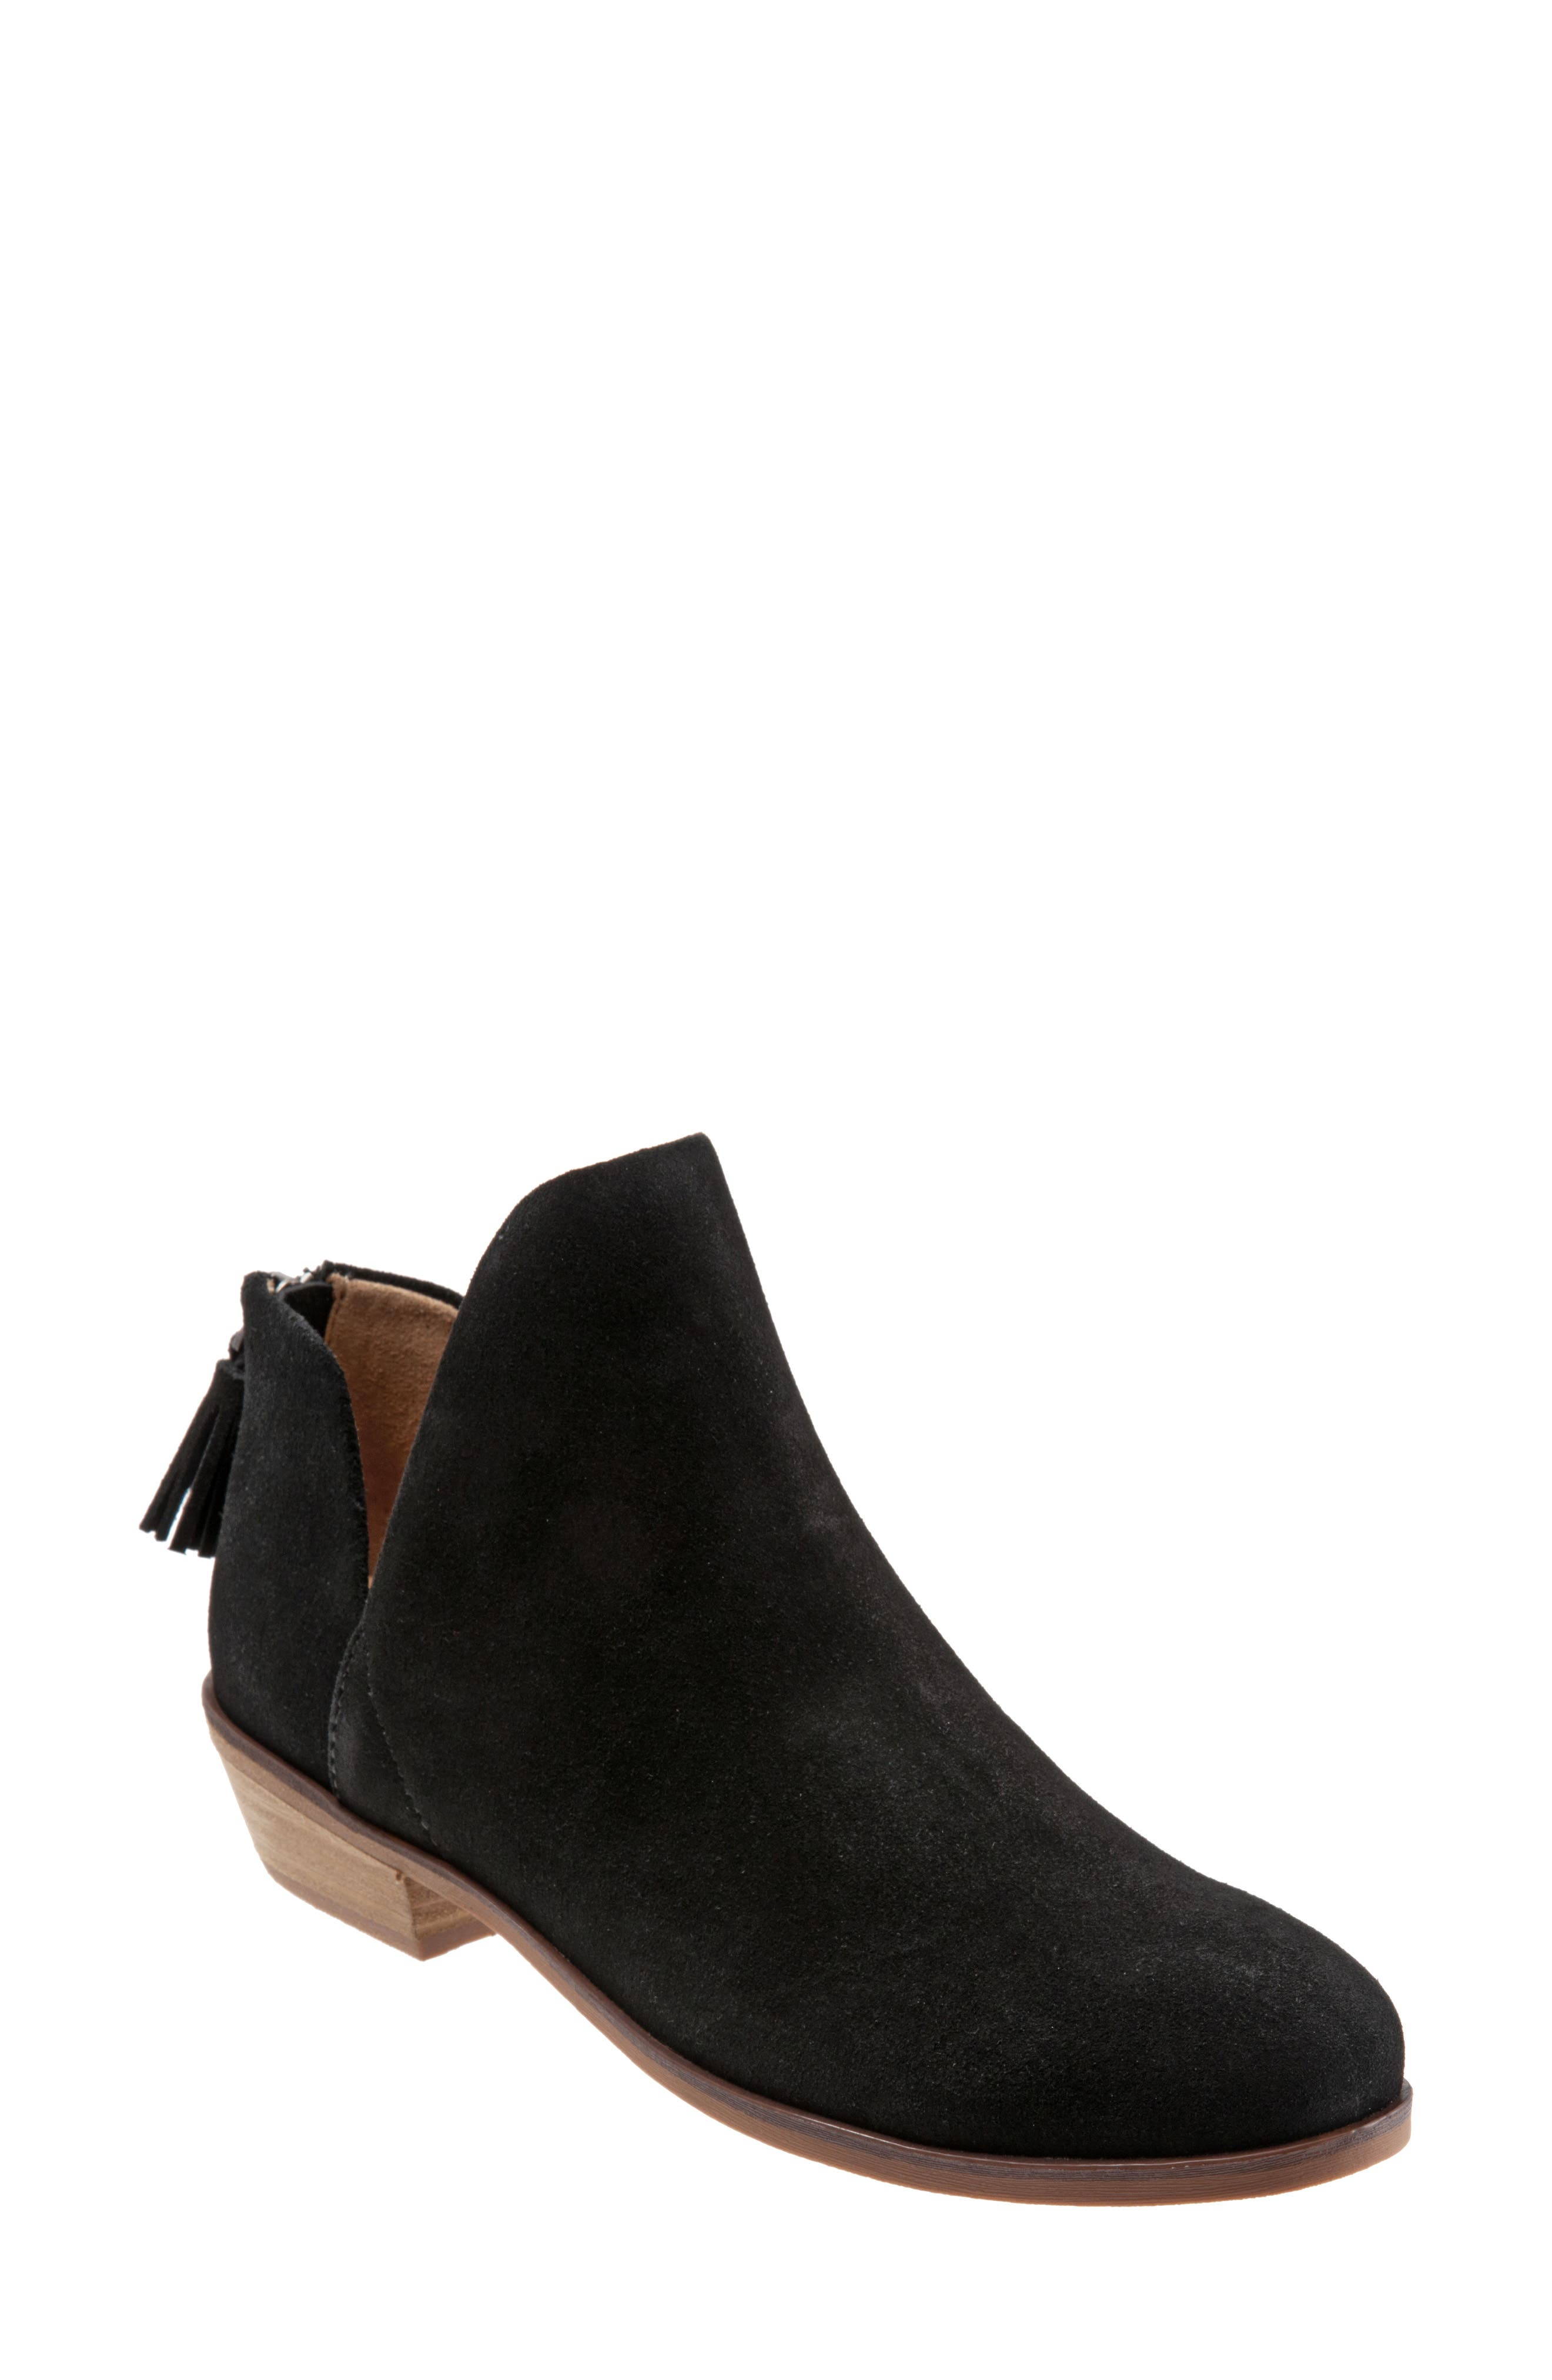 A bootie that lets the ankles breath (and, yes, show off) features a low, stacked woodgrain heel and tasseled back-zip closure. Style Name: Softwalk Rylee Bootie (Women). Style Number: 5812432. Available in stores.